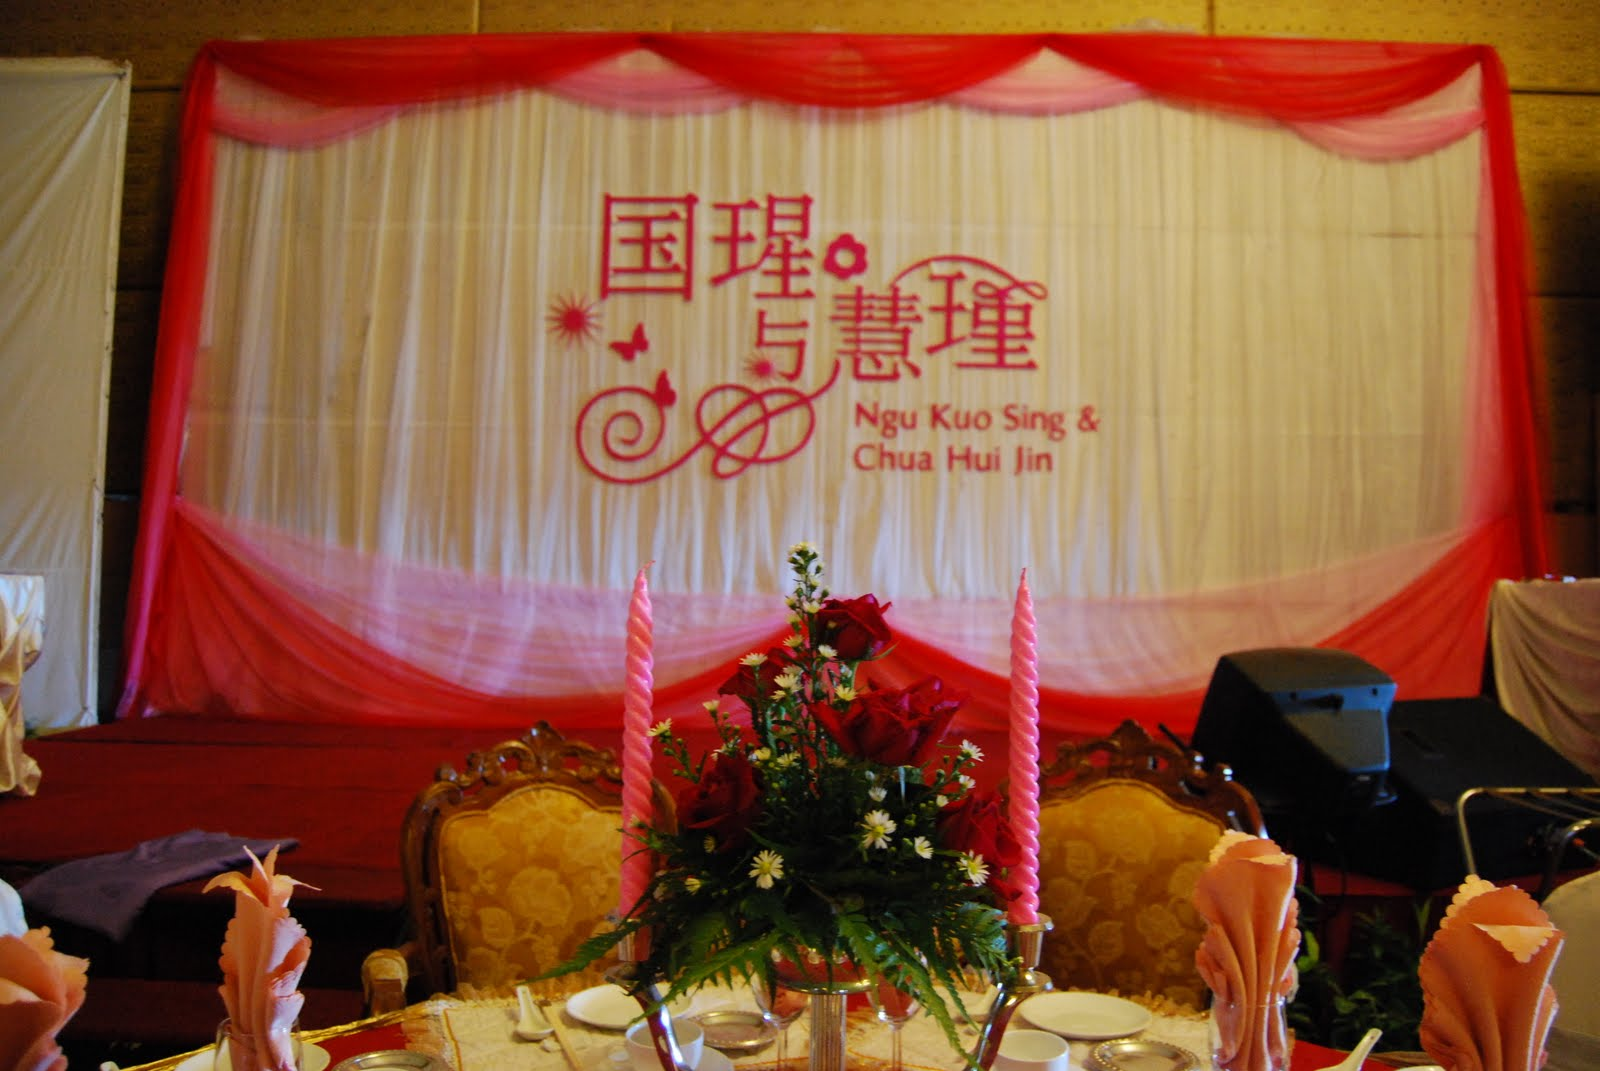 Wedding backdrop for Ngu Kuo